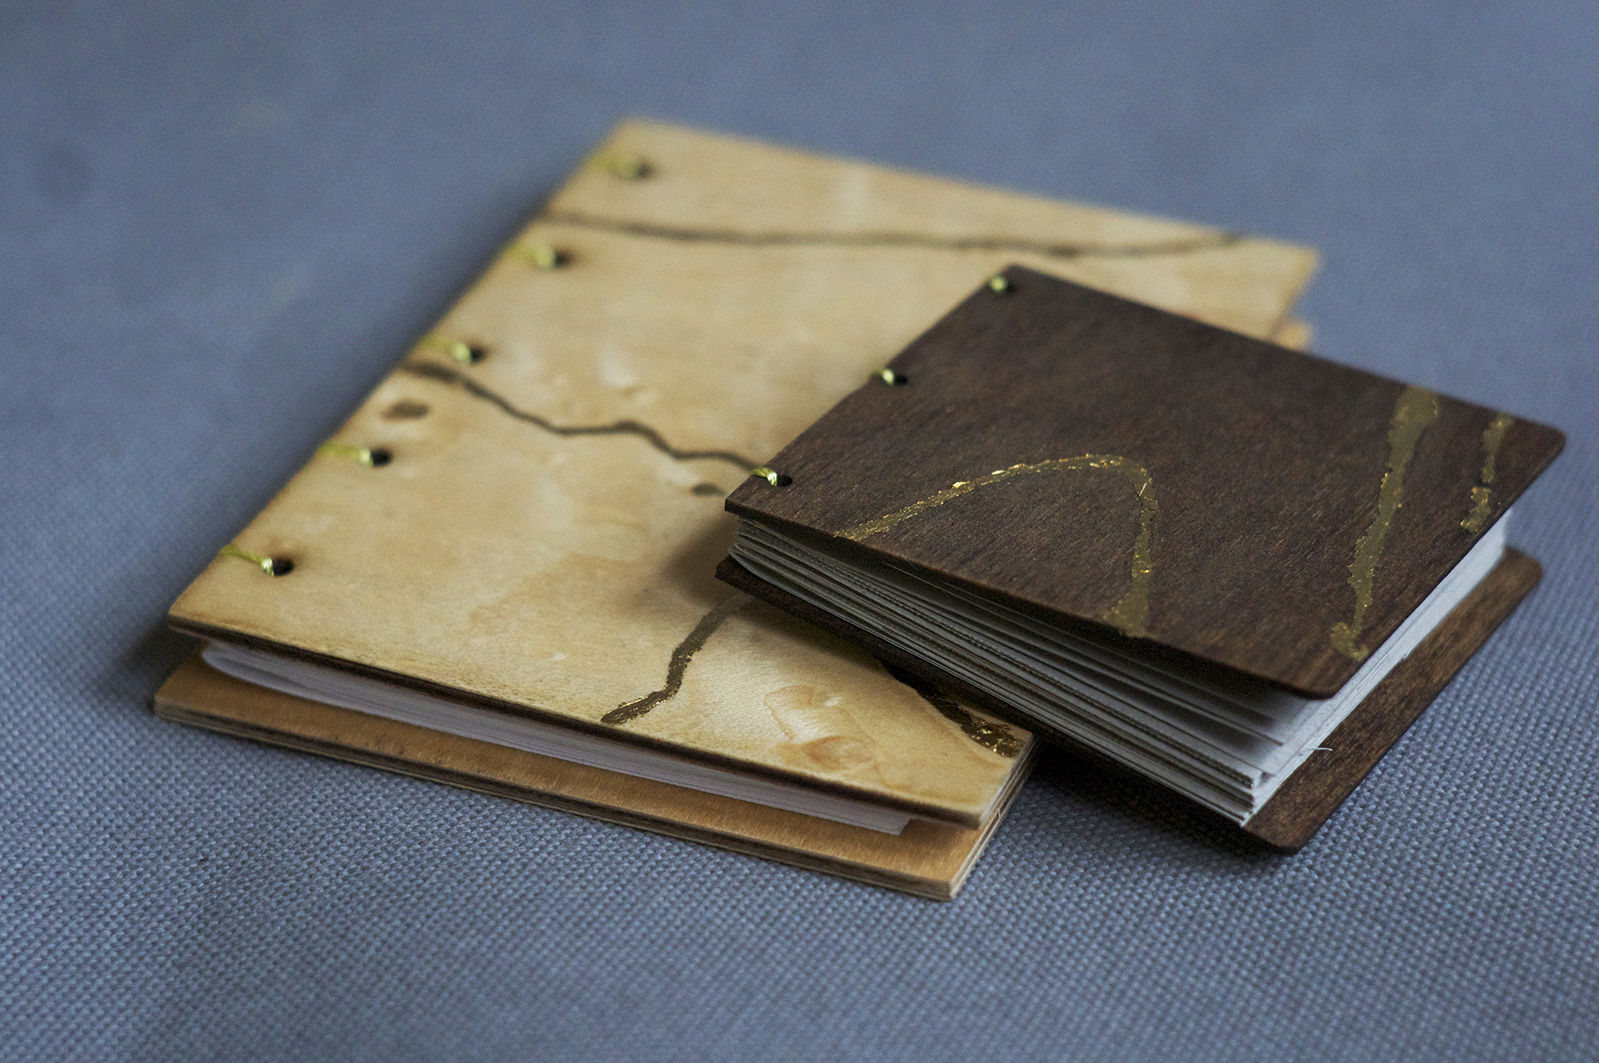 Coptic ing a feel bookbinding diy veiled threat coptic ing a feel bookbinding diy solutioingenieria Choice Image